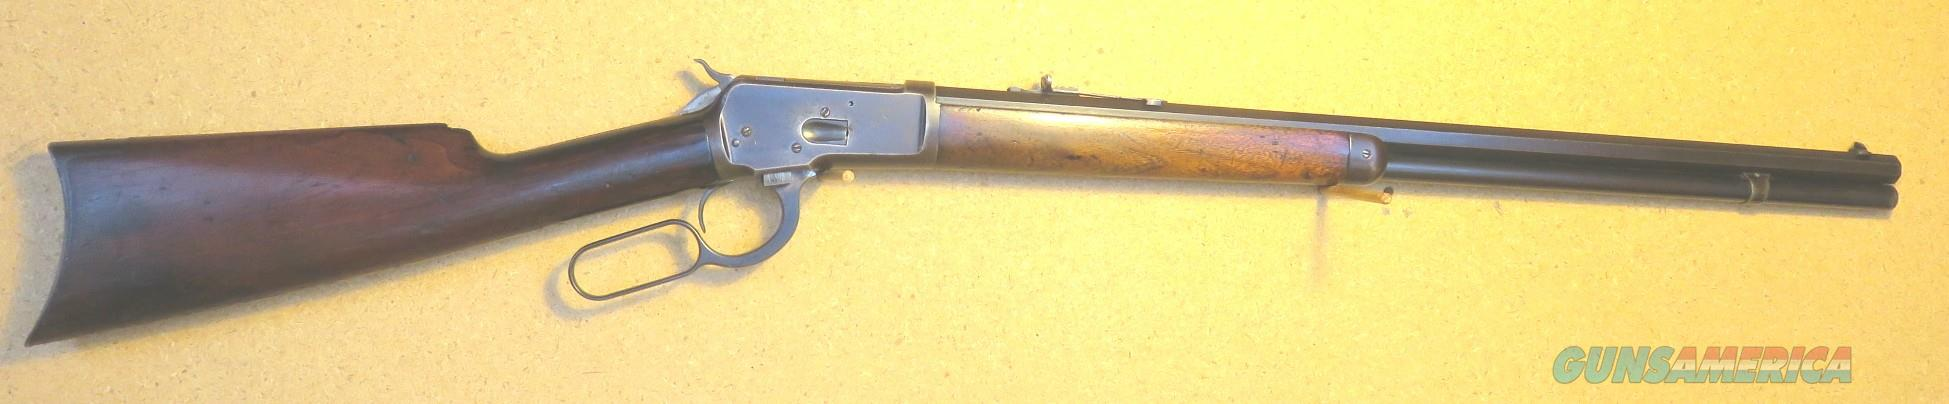 """Winchester 1892 rifle 24"""" OB, CB ,38WCF (38-40)  Guns > Rifles > Winchester Rifles - Modern Lever > Other Lever > Pre-64"""